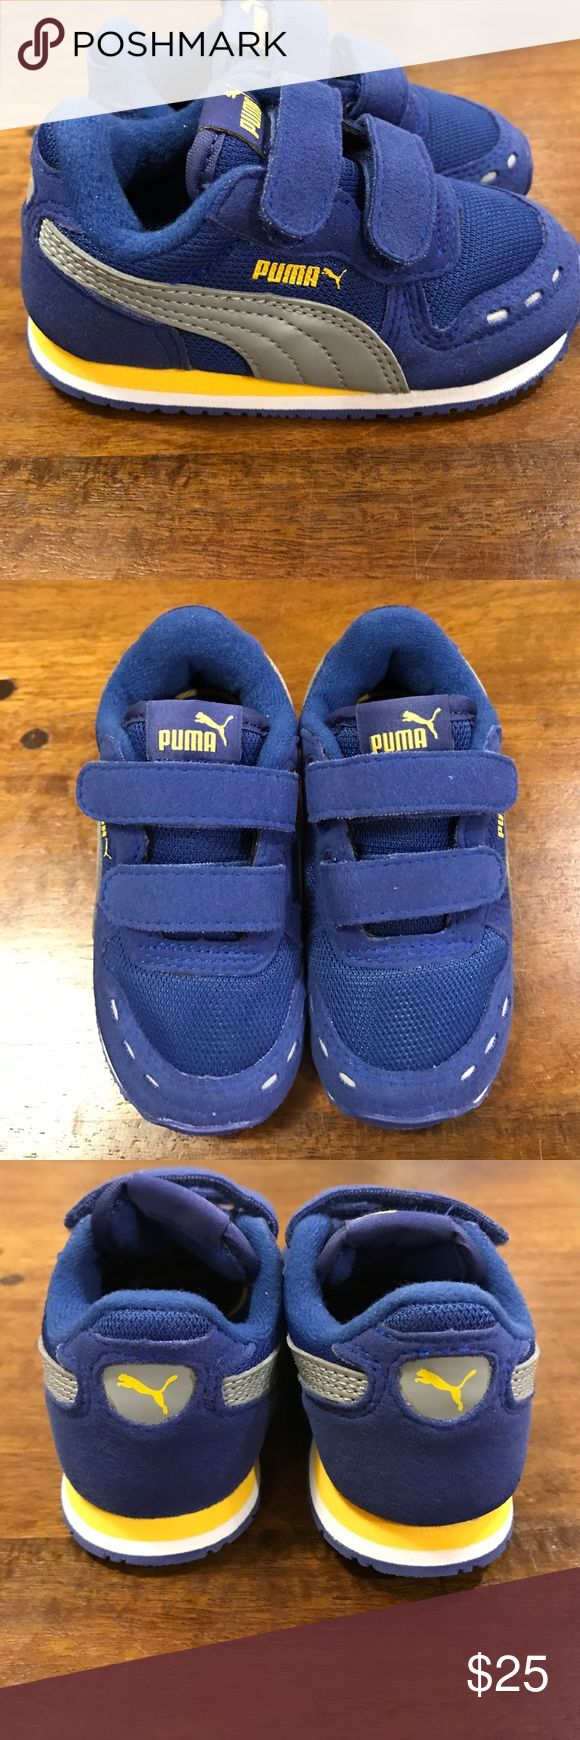 Brand new baby blue puma sneakers Brand new baby blue puma sneakers with yellow stripes. Double Velcro closure. Puma Shoes Sneakers